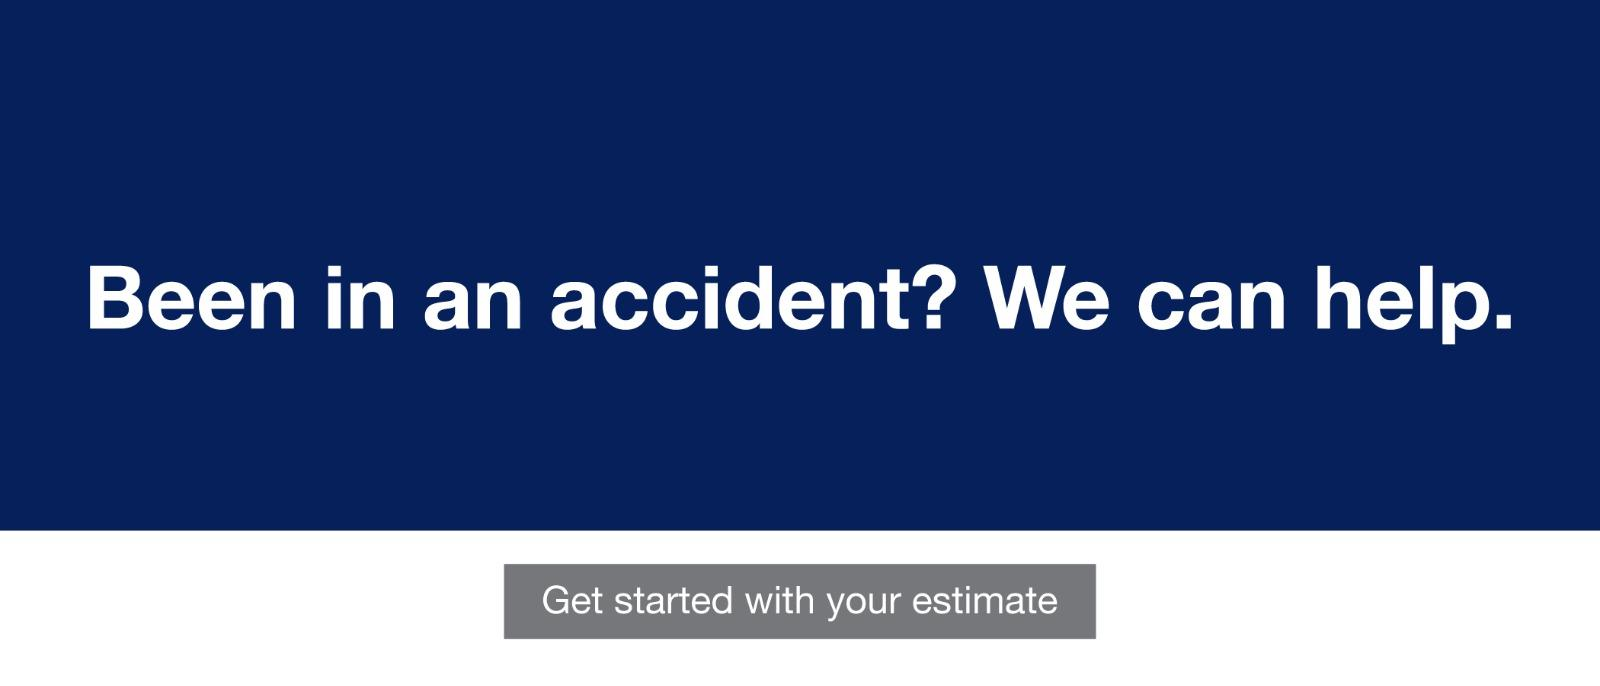 Been in an accident? we can help.